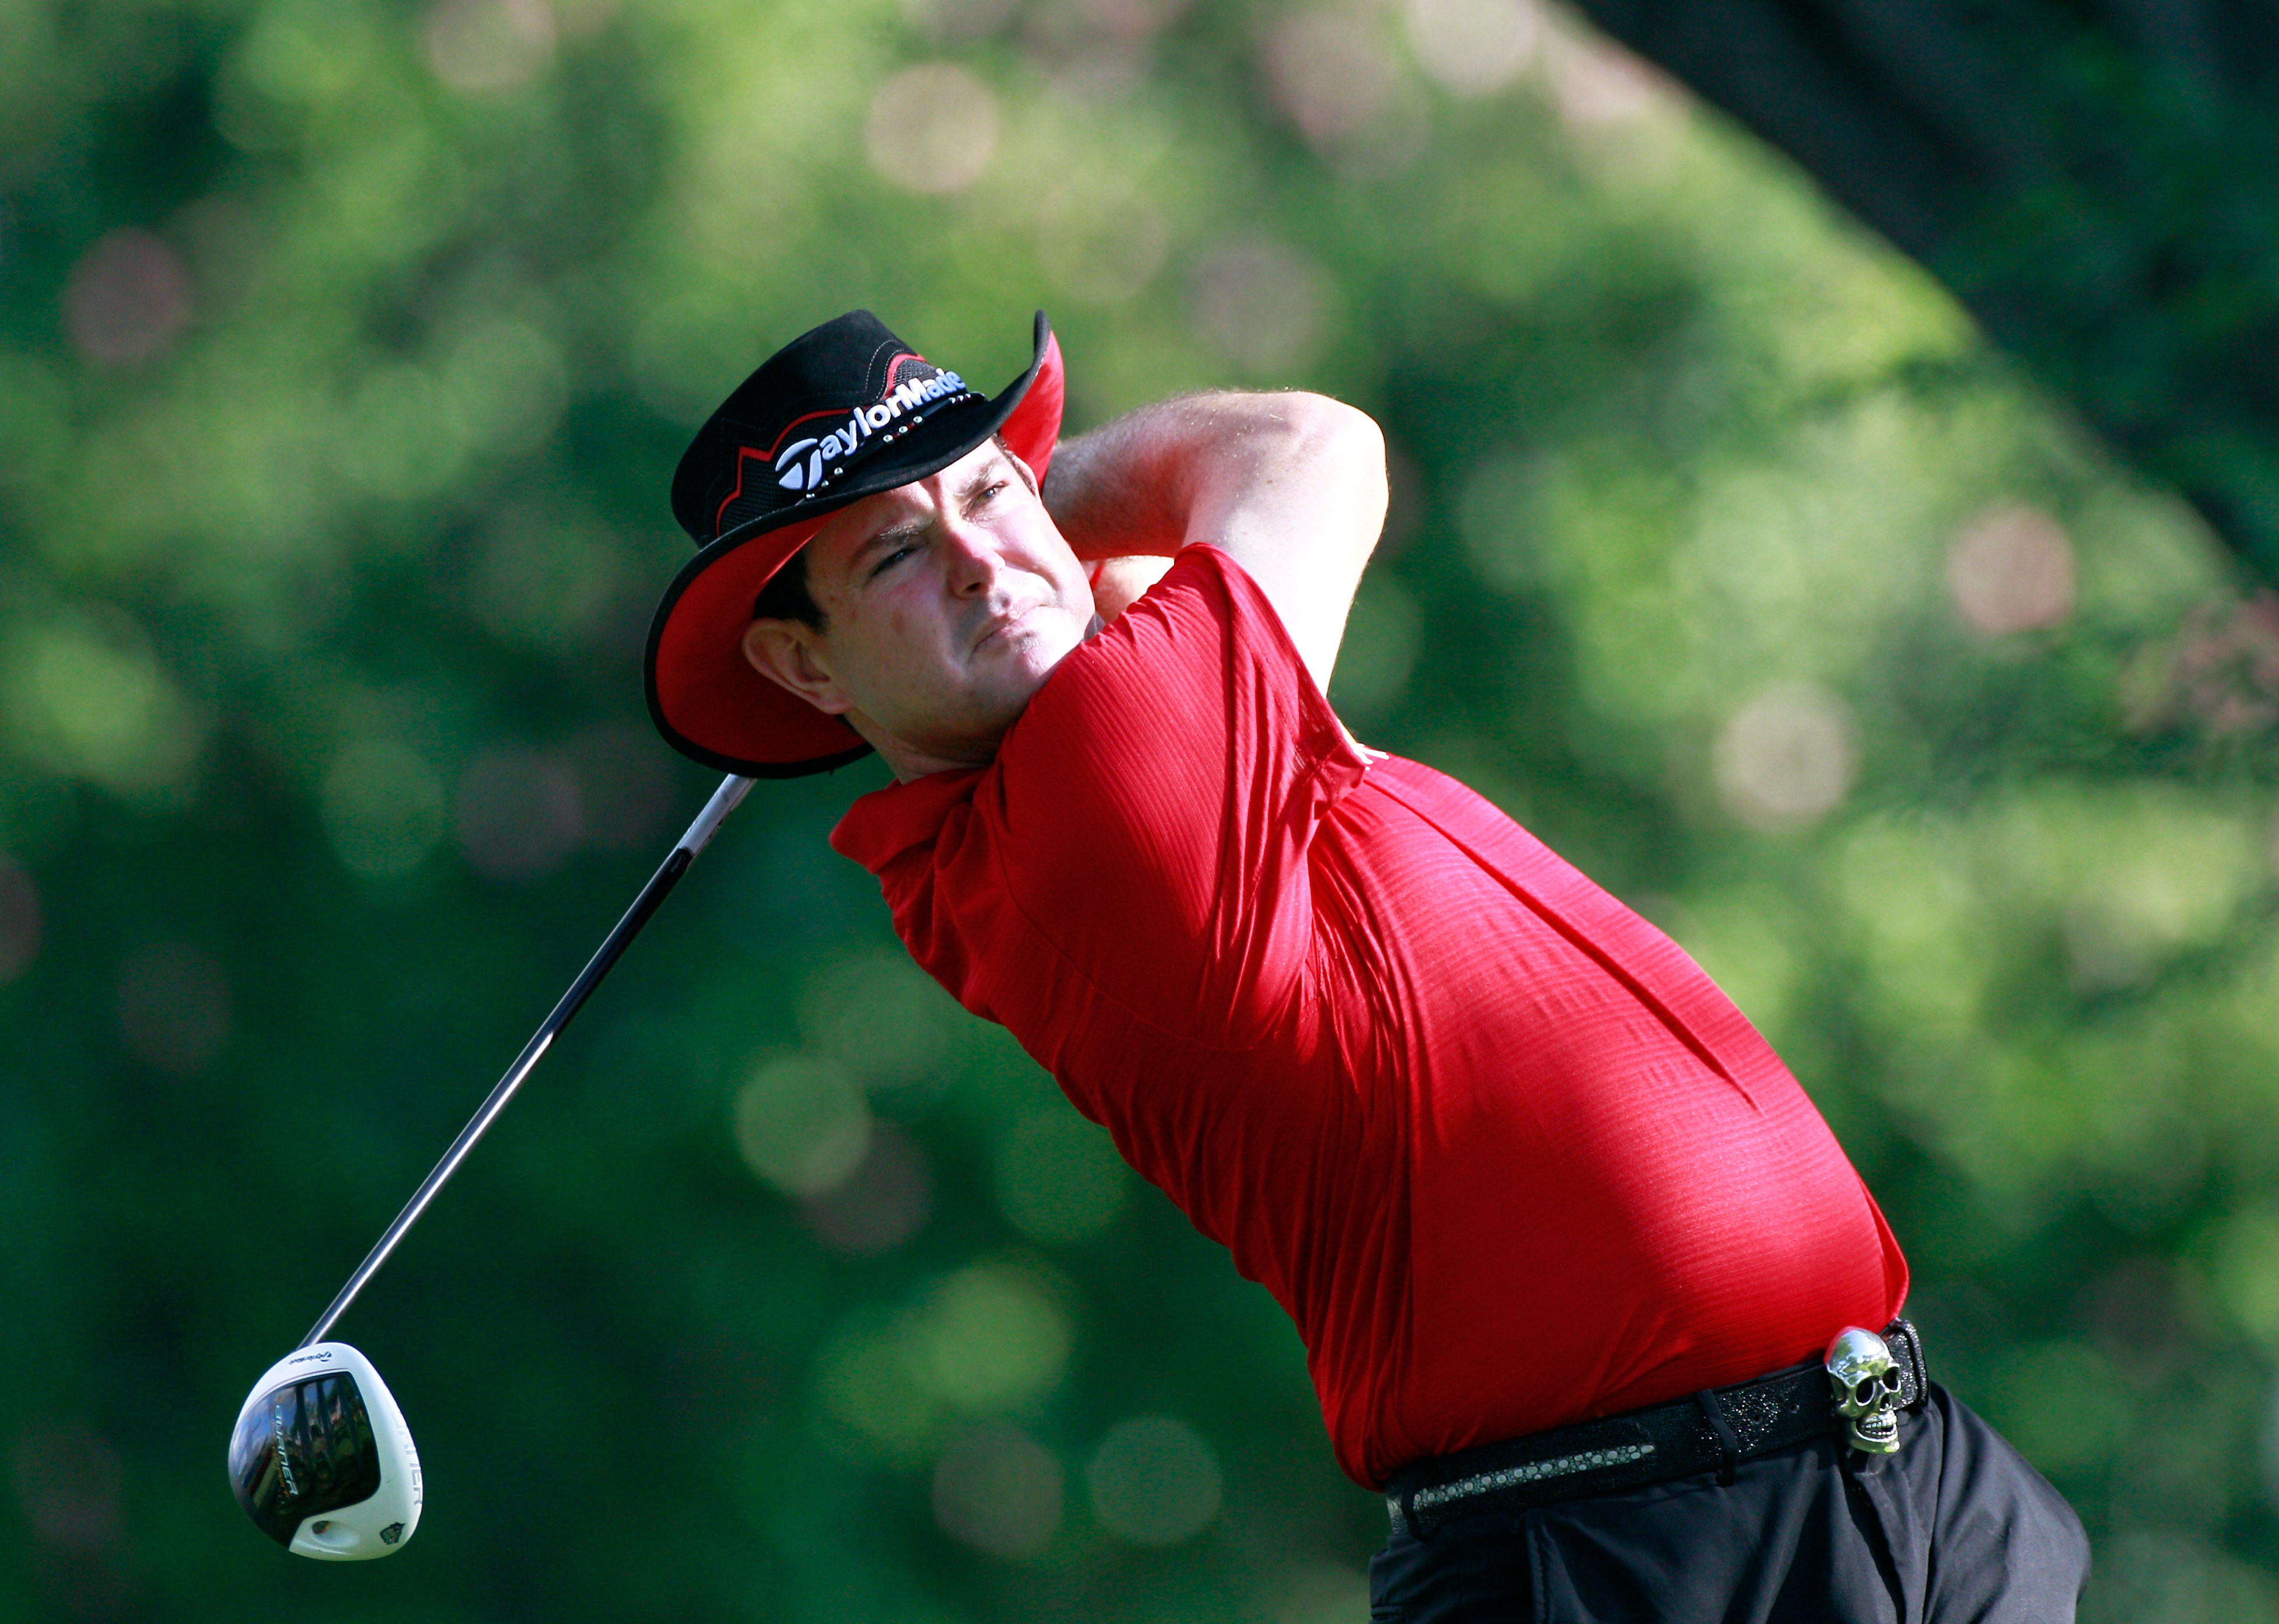 HONOLULU, HI - JANUARY 15:  Rory Sabbatini of South Africa hits a shot during the second round of the Sony Open at Waialae Country Club on January 15, 2011 in Honolulu, Hawaii.  (Photo by Sam Greenwood/Getty Images)